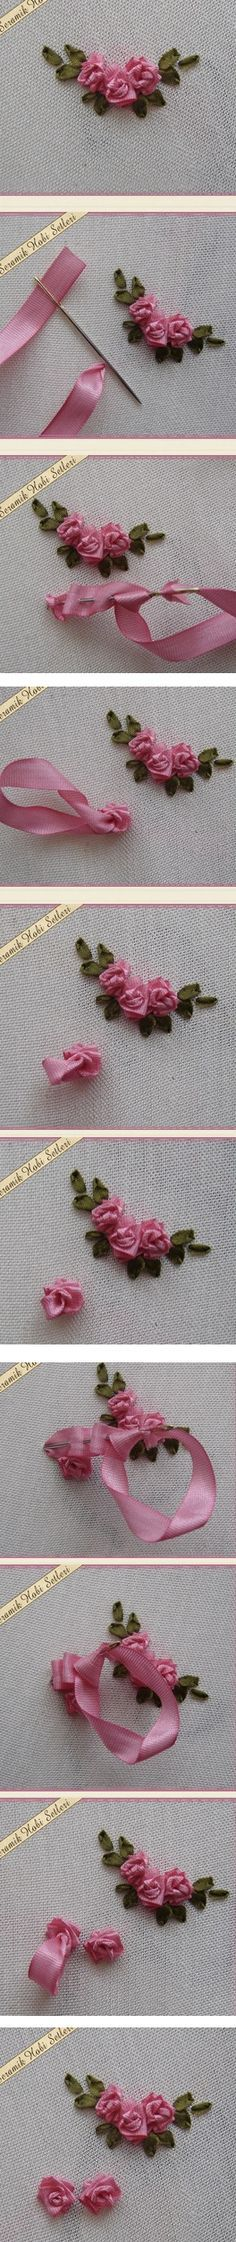 *RIBBON ART ~ Sweet ribbonwork Rosebud clusters.